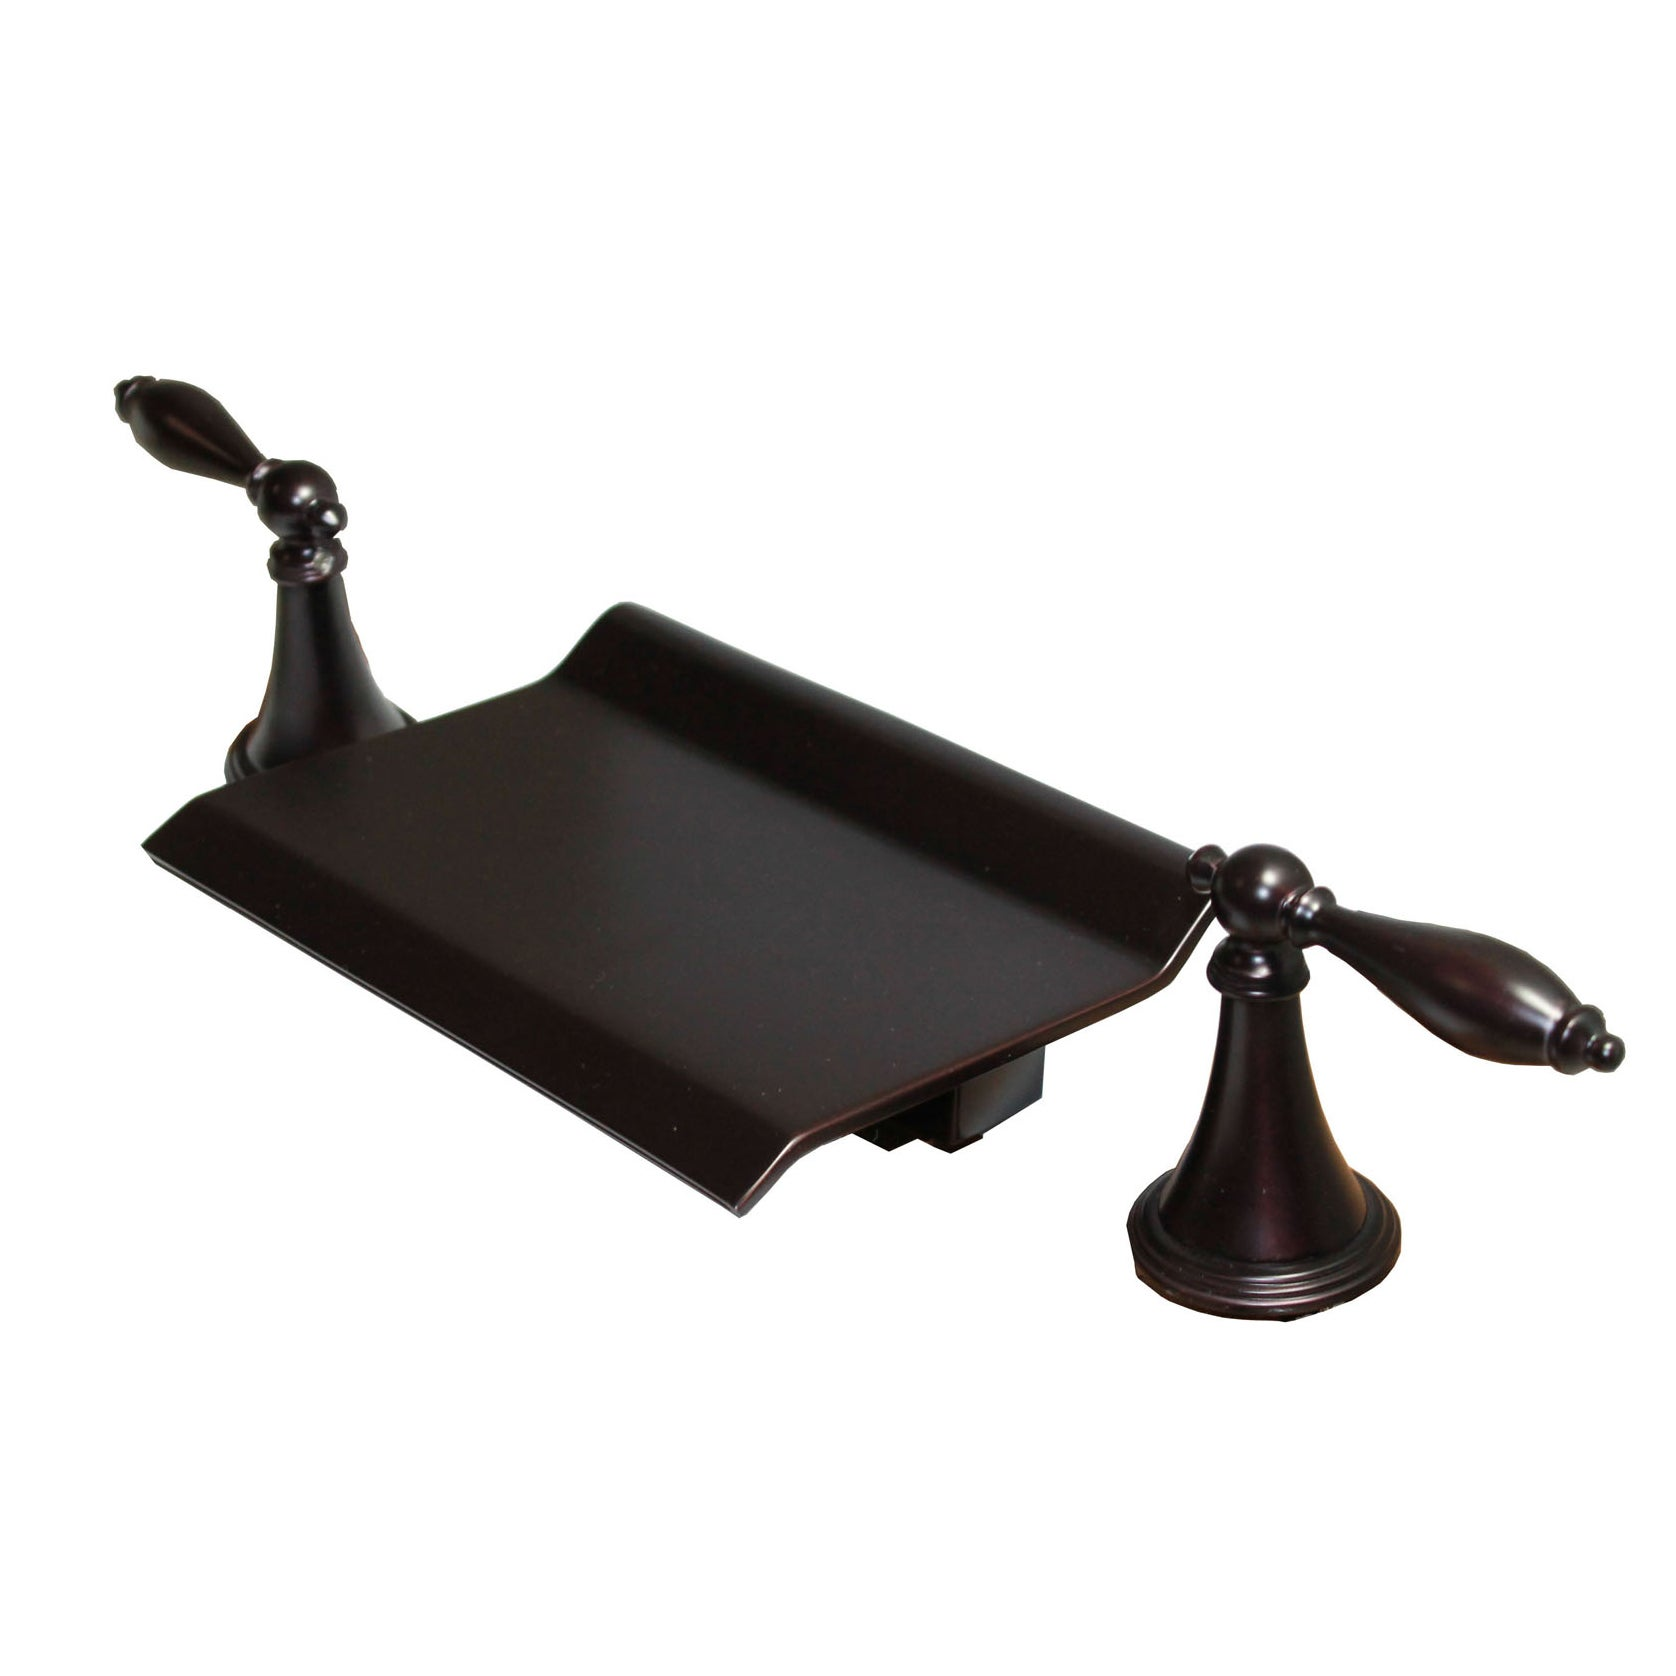 Shop Kokols Oil-rubbed Bronze Waterfall Bath Faucet - Free Shipping ...